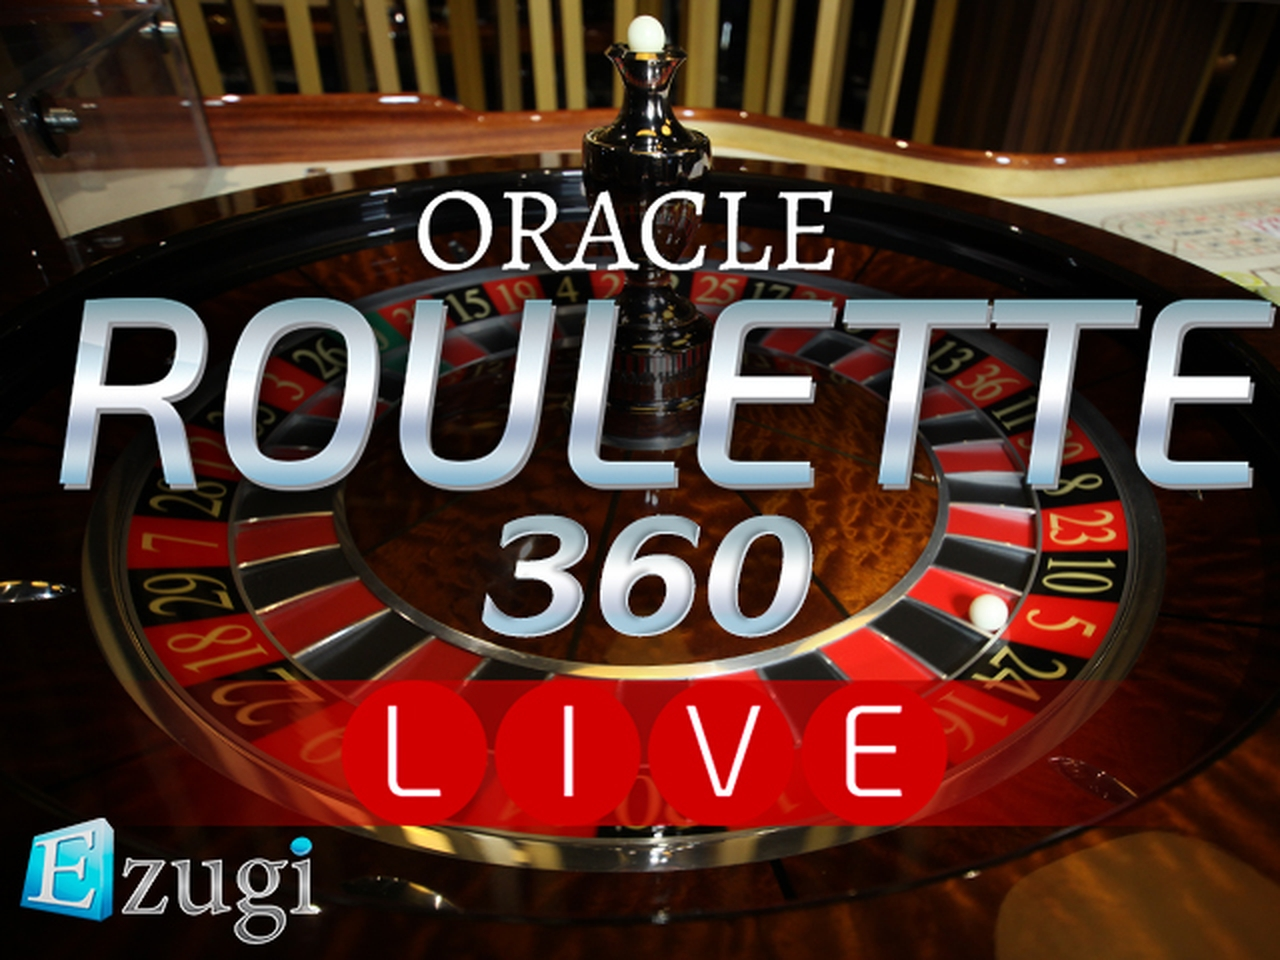 Se Roulette Oracle Casino 360 Online Slot Demo Game, Ezugi